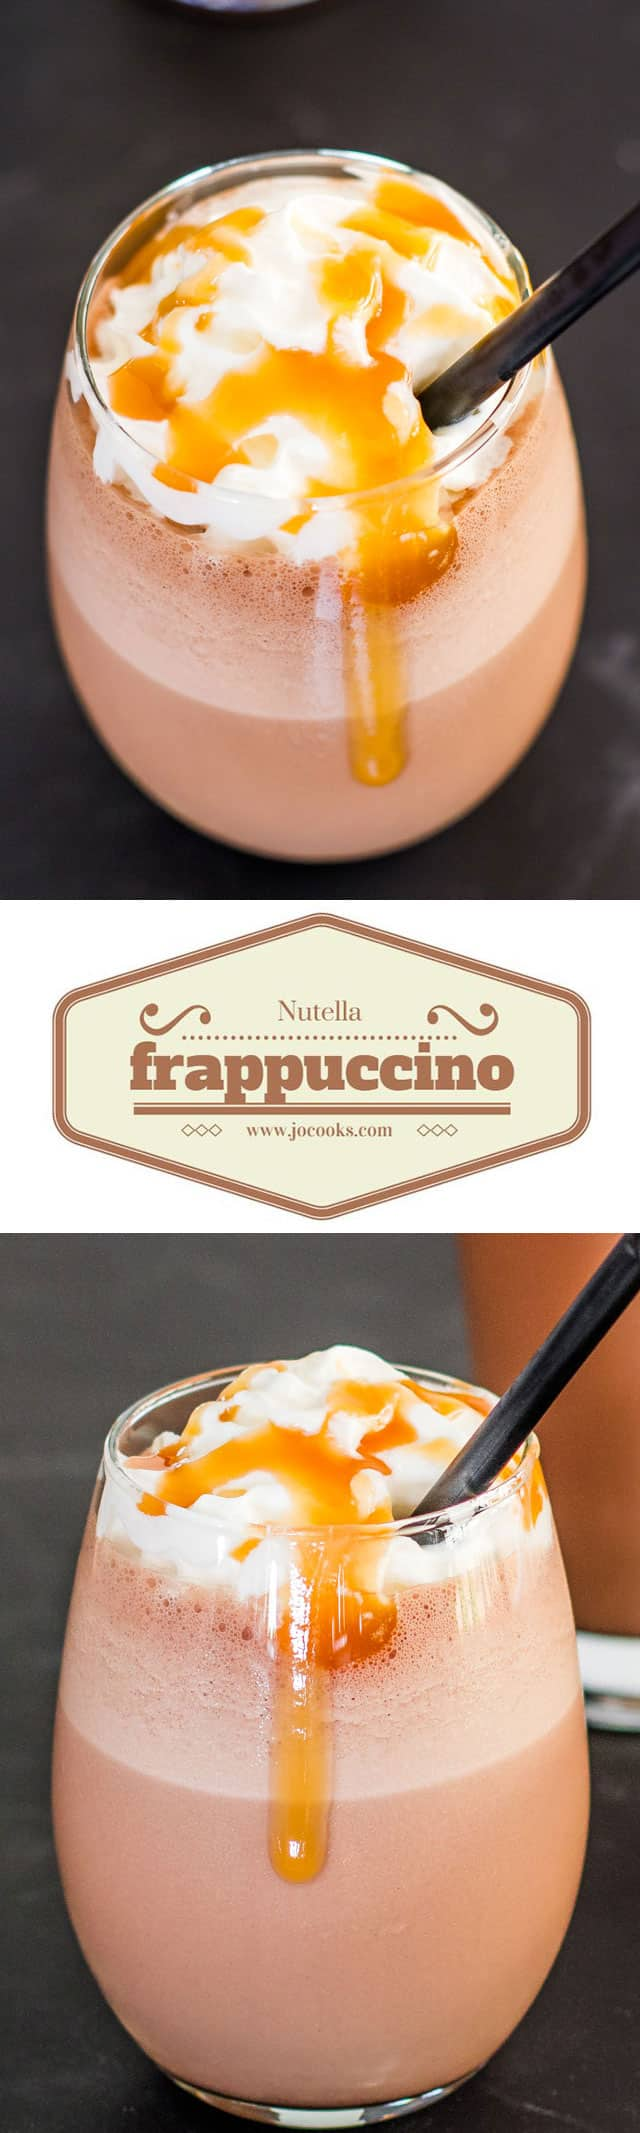 Homemade Nutella Frappuccino topped with whipped cream and caramel sauce collage